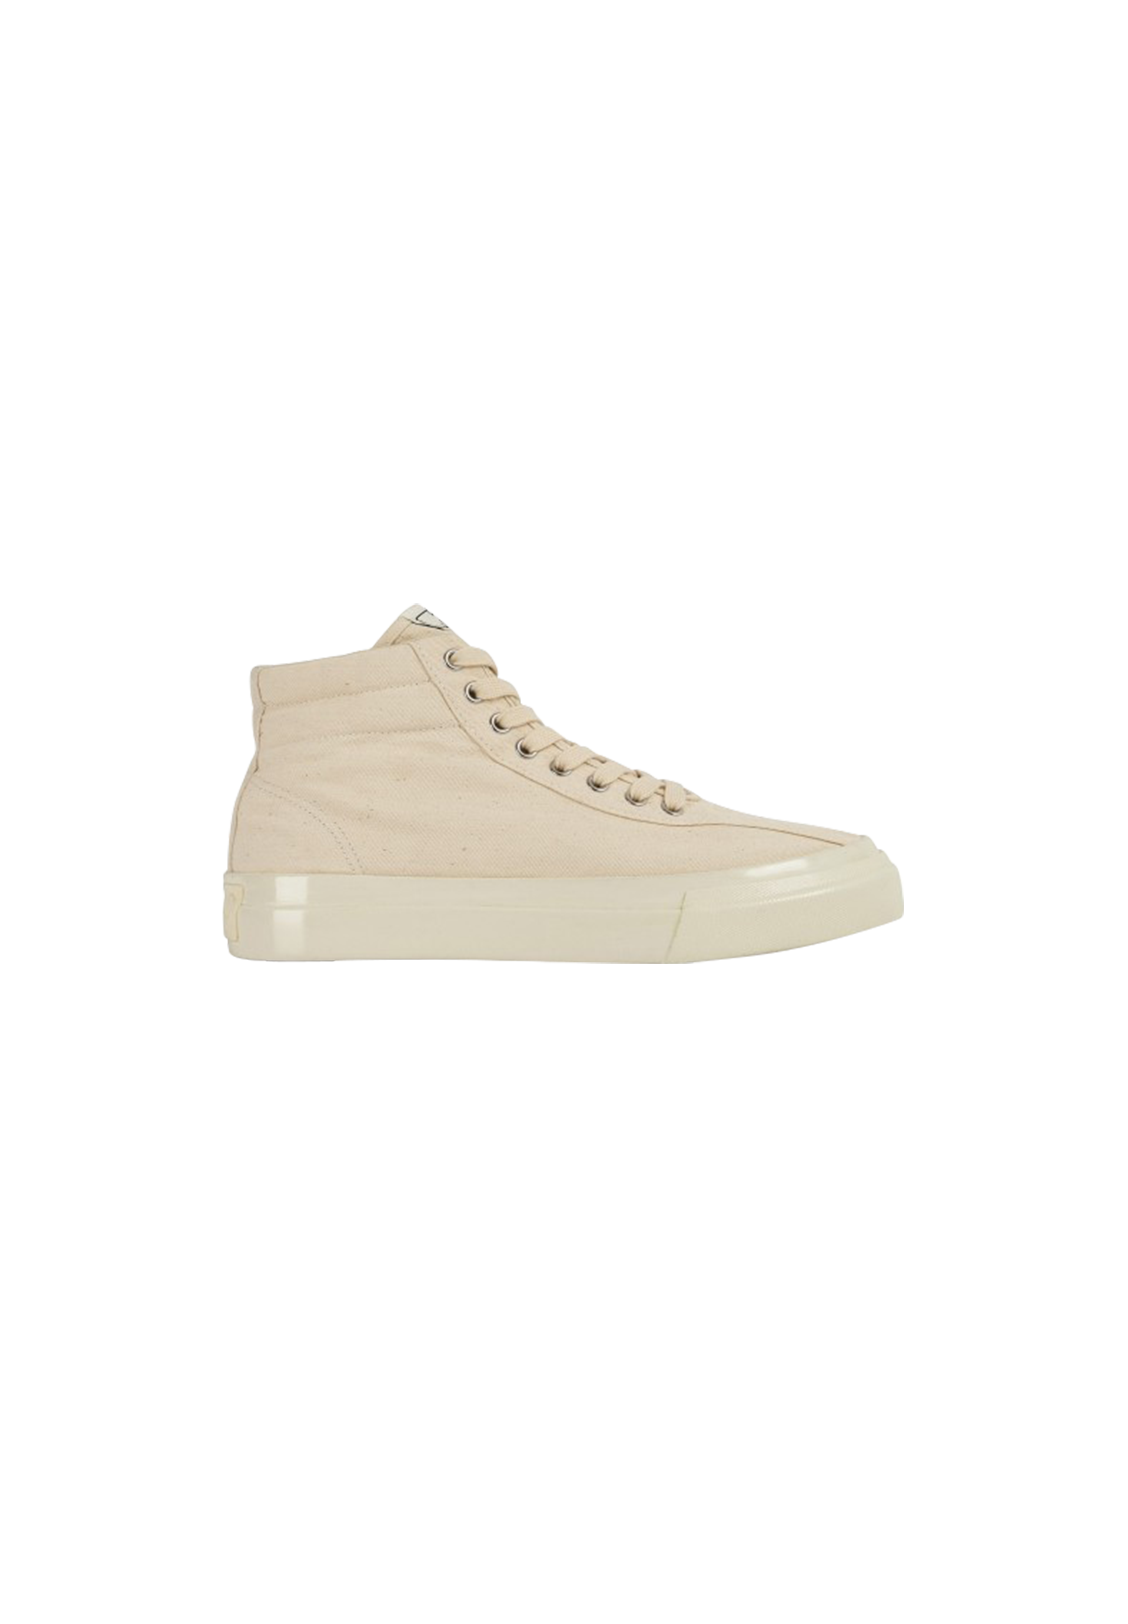 S.W.C MENS VARDEN CANVAS, ECRU